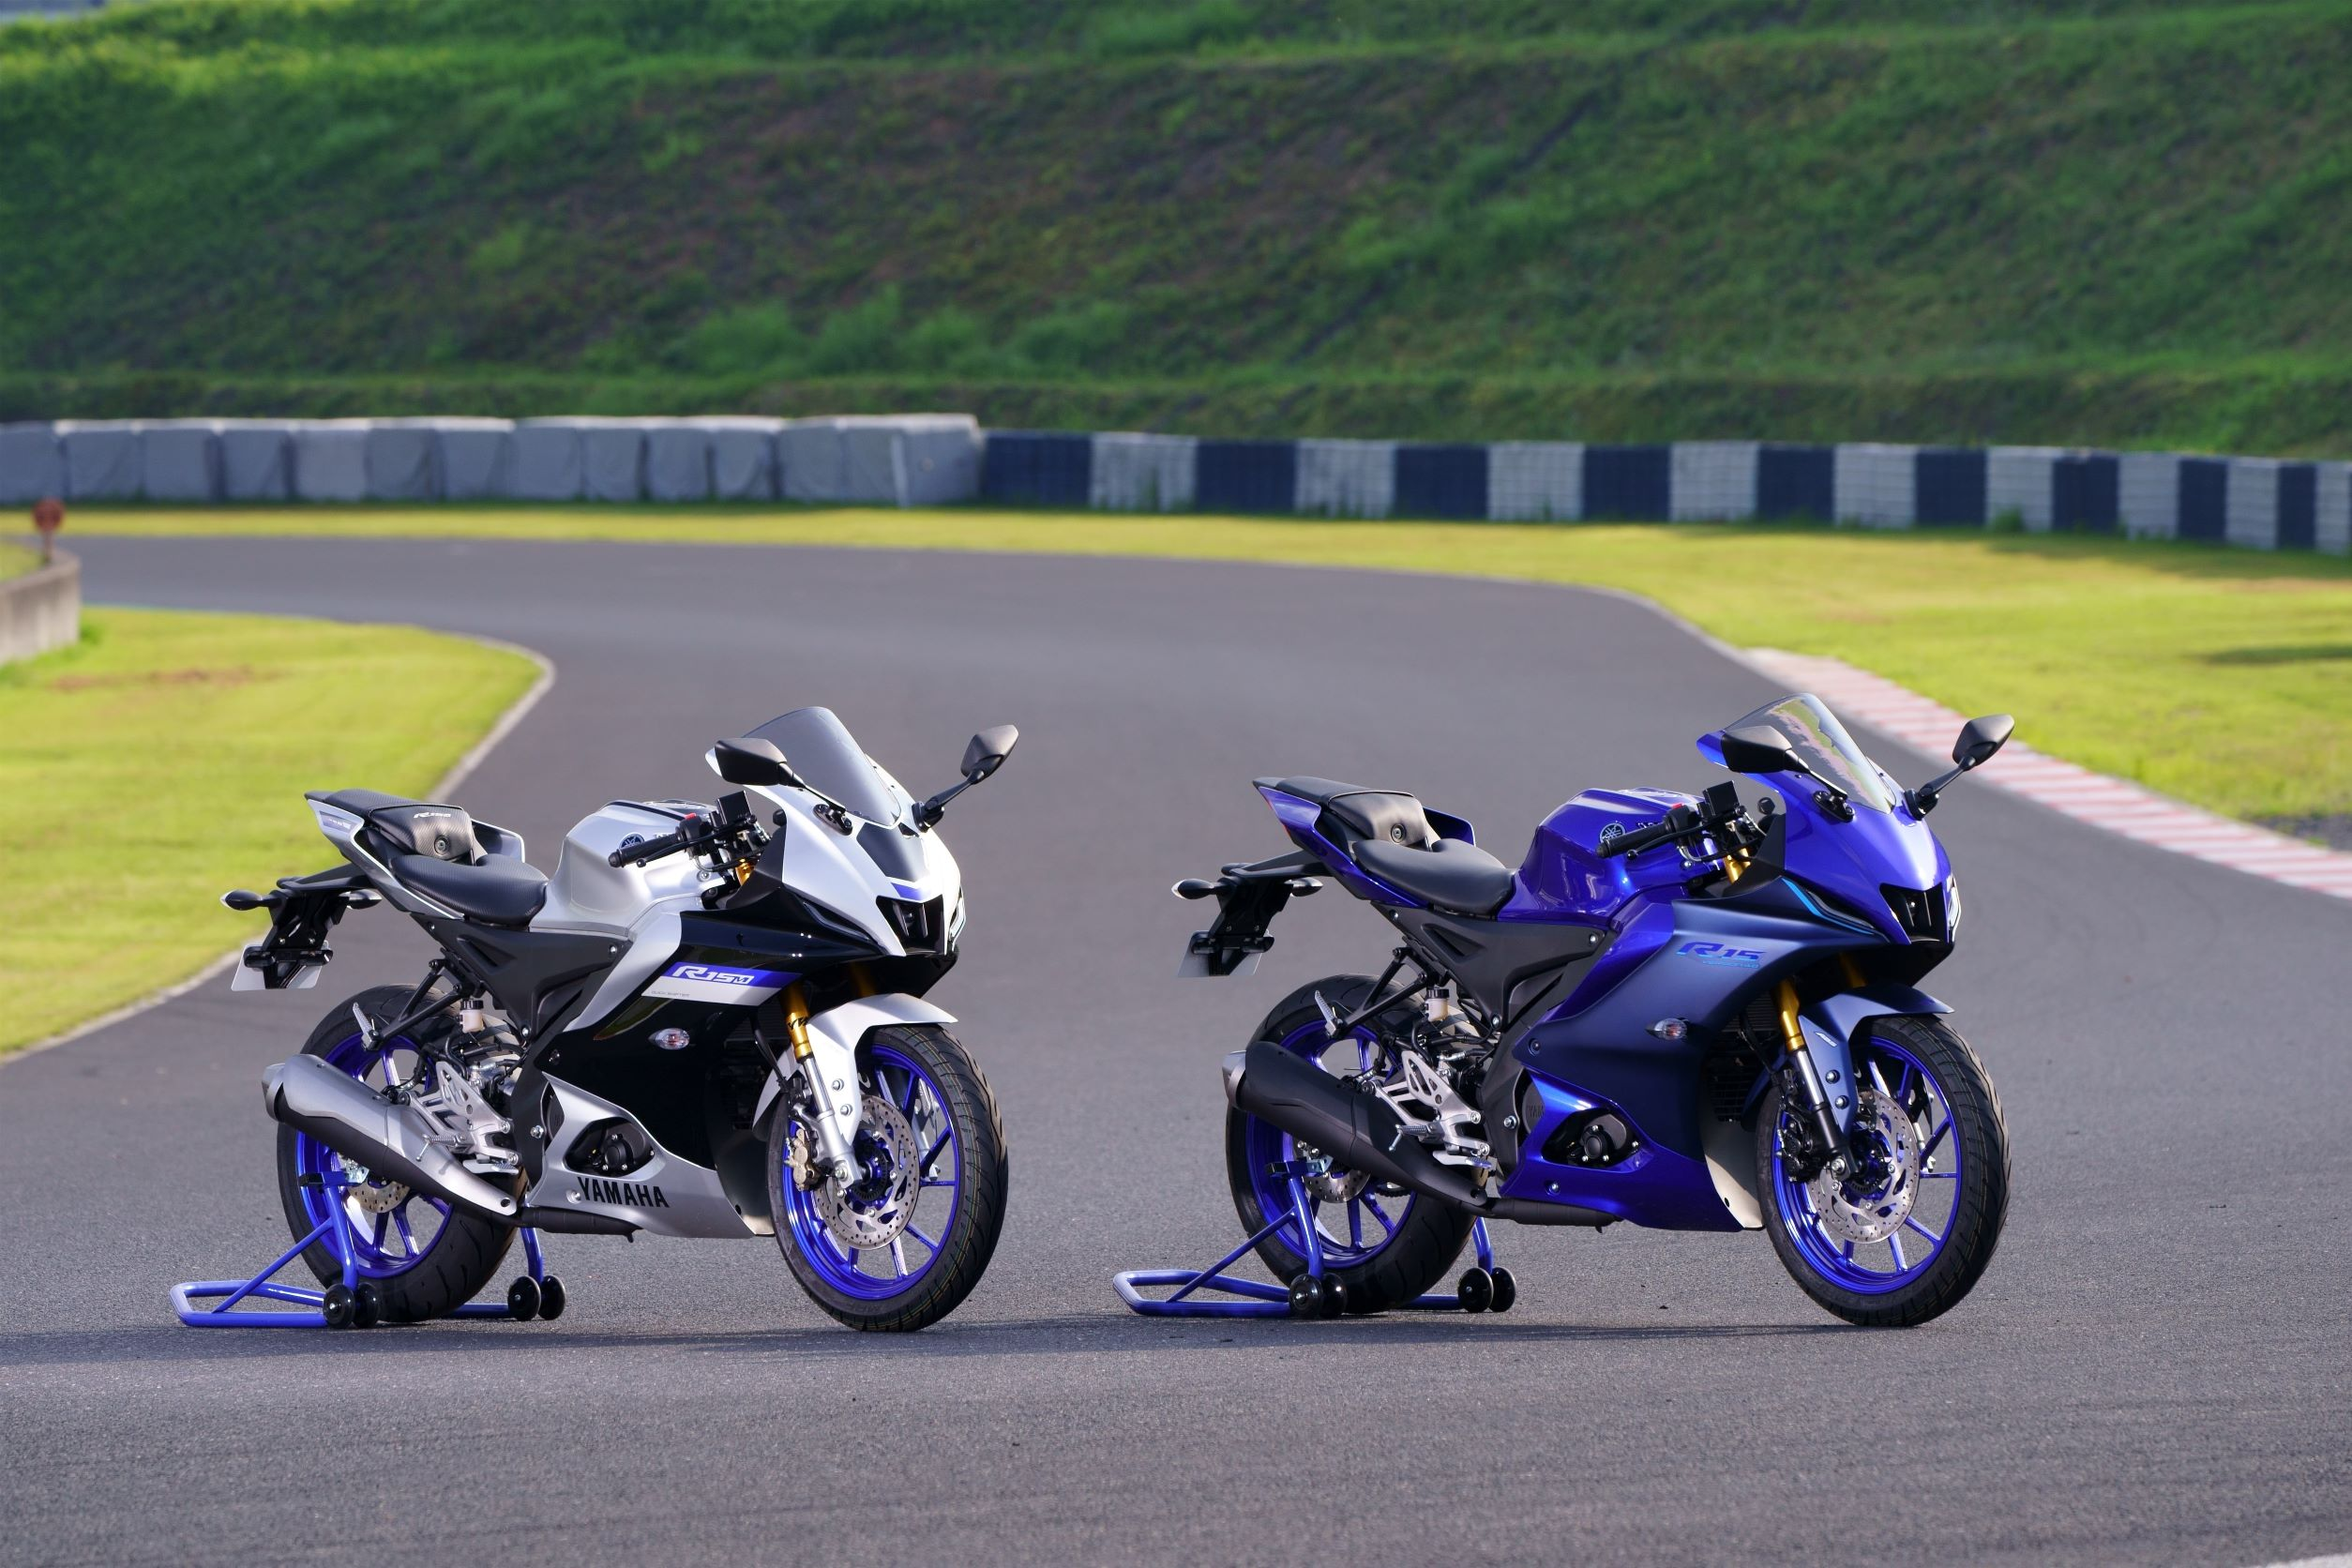 The 2021 range of Yamaha YZF-R15 gets a host of segment first features. It will be available across all company dealerships in India by end of September.